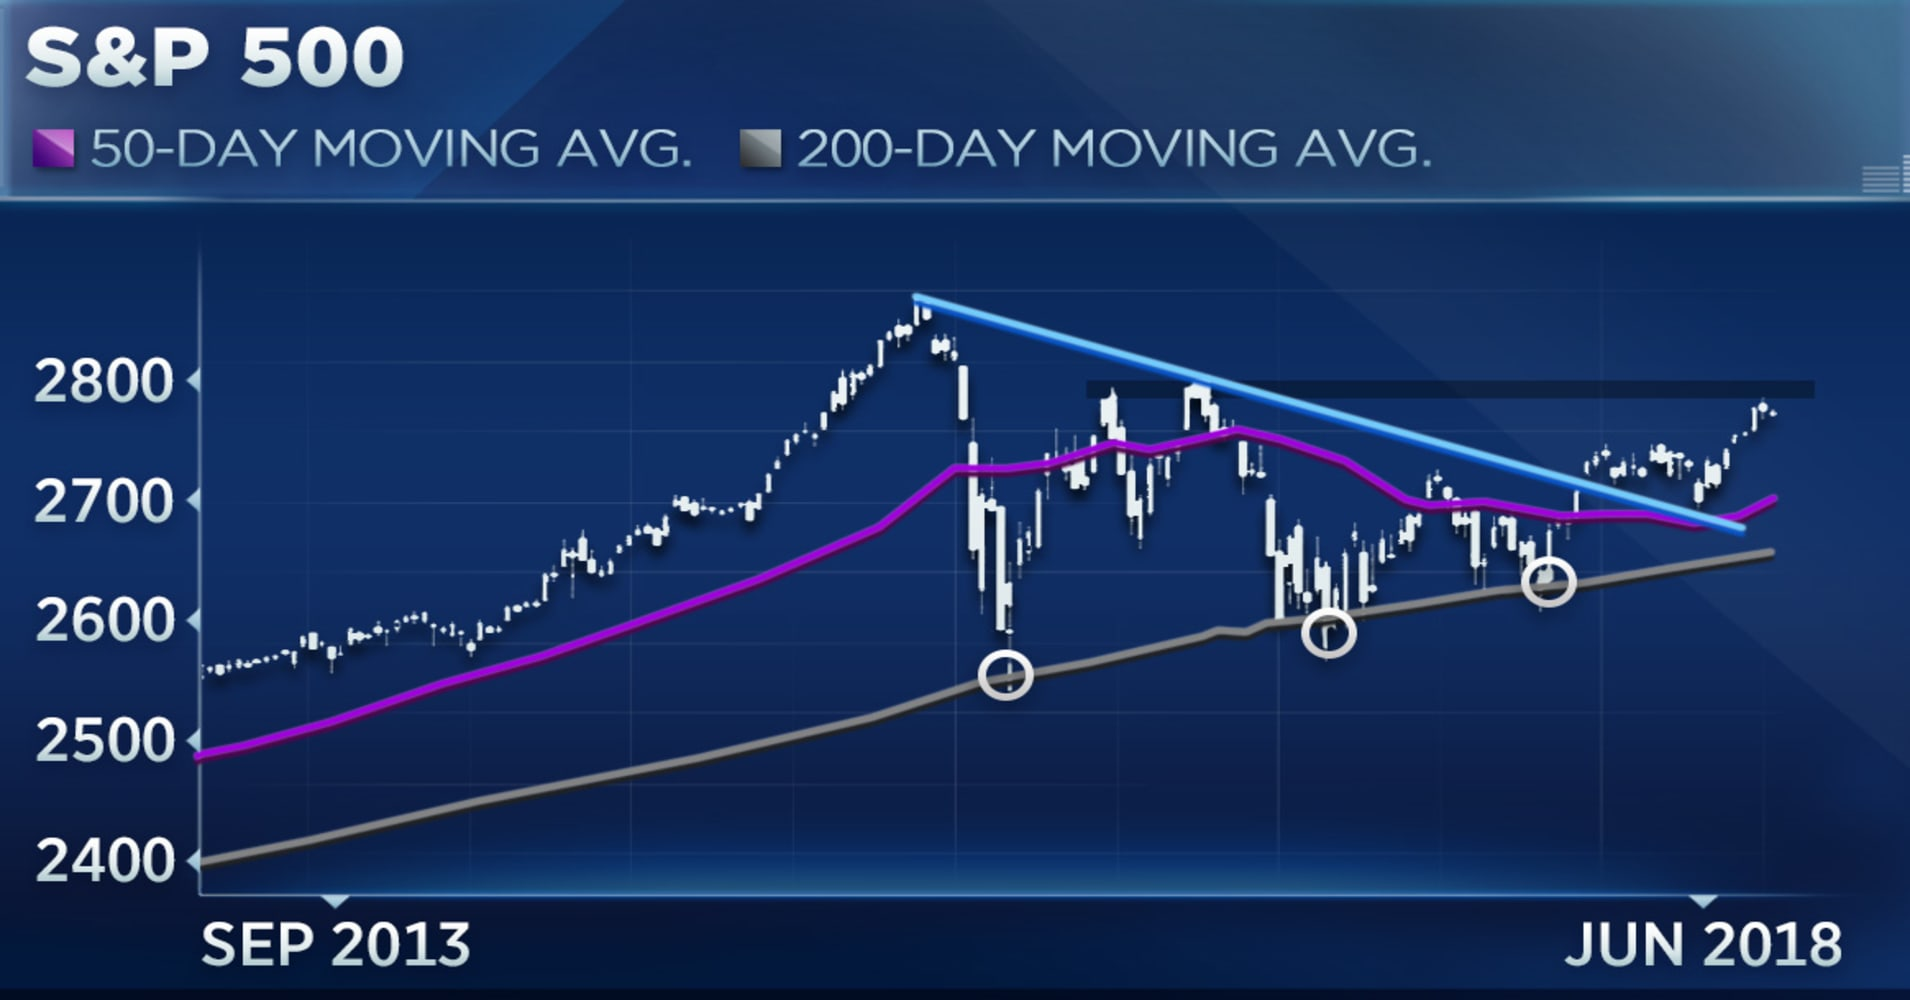 The Sp Levels To Watch Amid A Huge Week For The Market